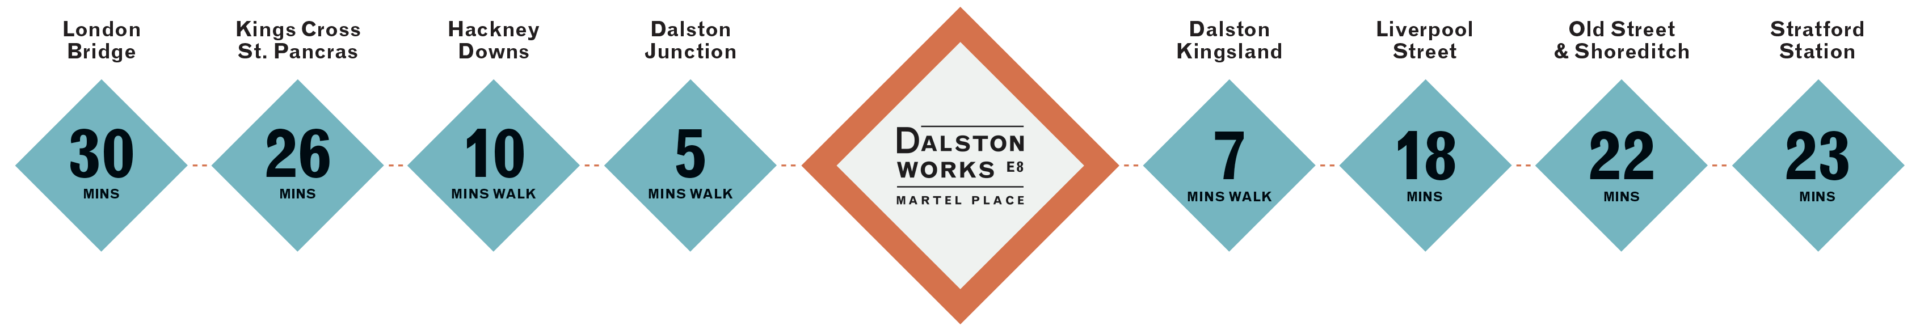 https://www.dalston-works.co.uk/wp-content/uploads/2017/07/DW_Transport-chart_2-1-1920x330.png